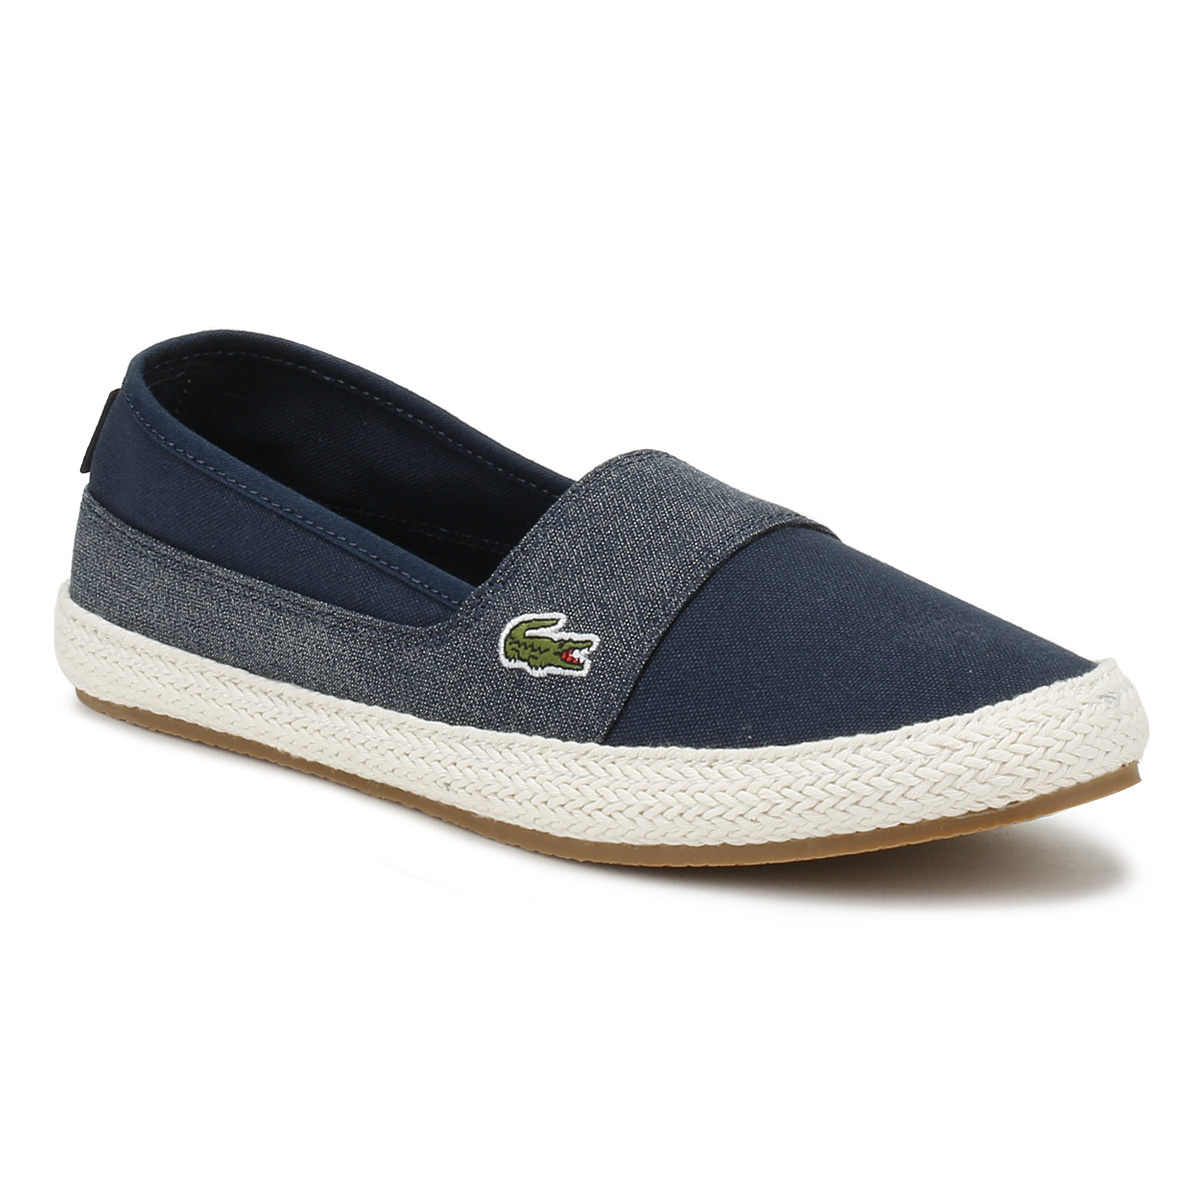 044b35481 Details about Lacoste Womens Flats Navy   Light Blue Marice 218 1  Espadrilles Casual Shoes